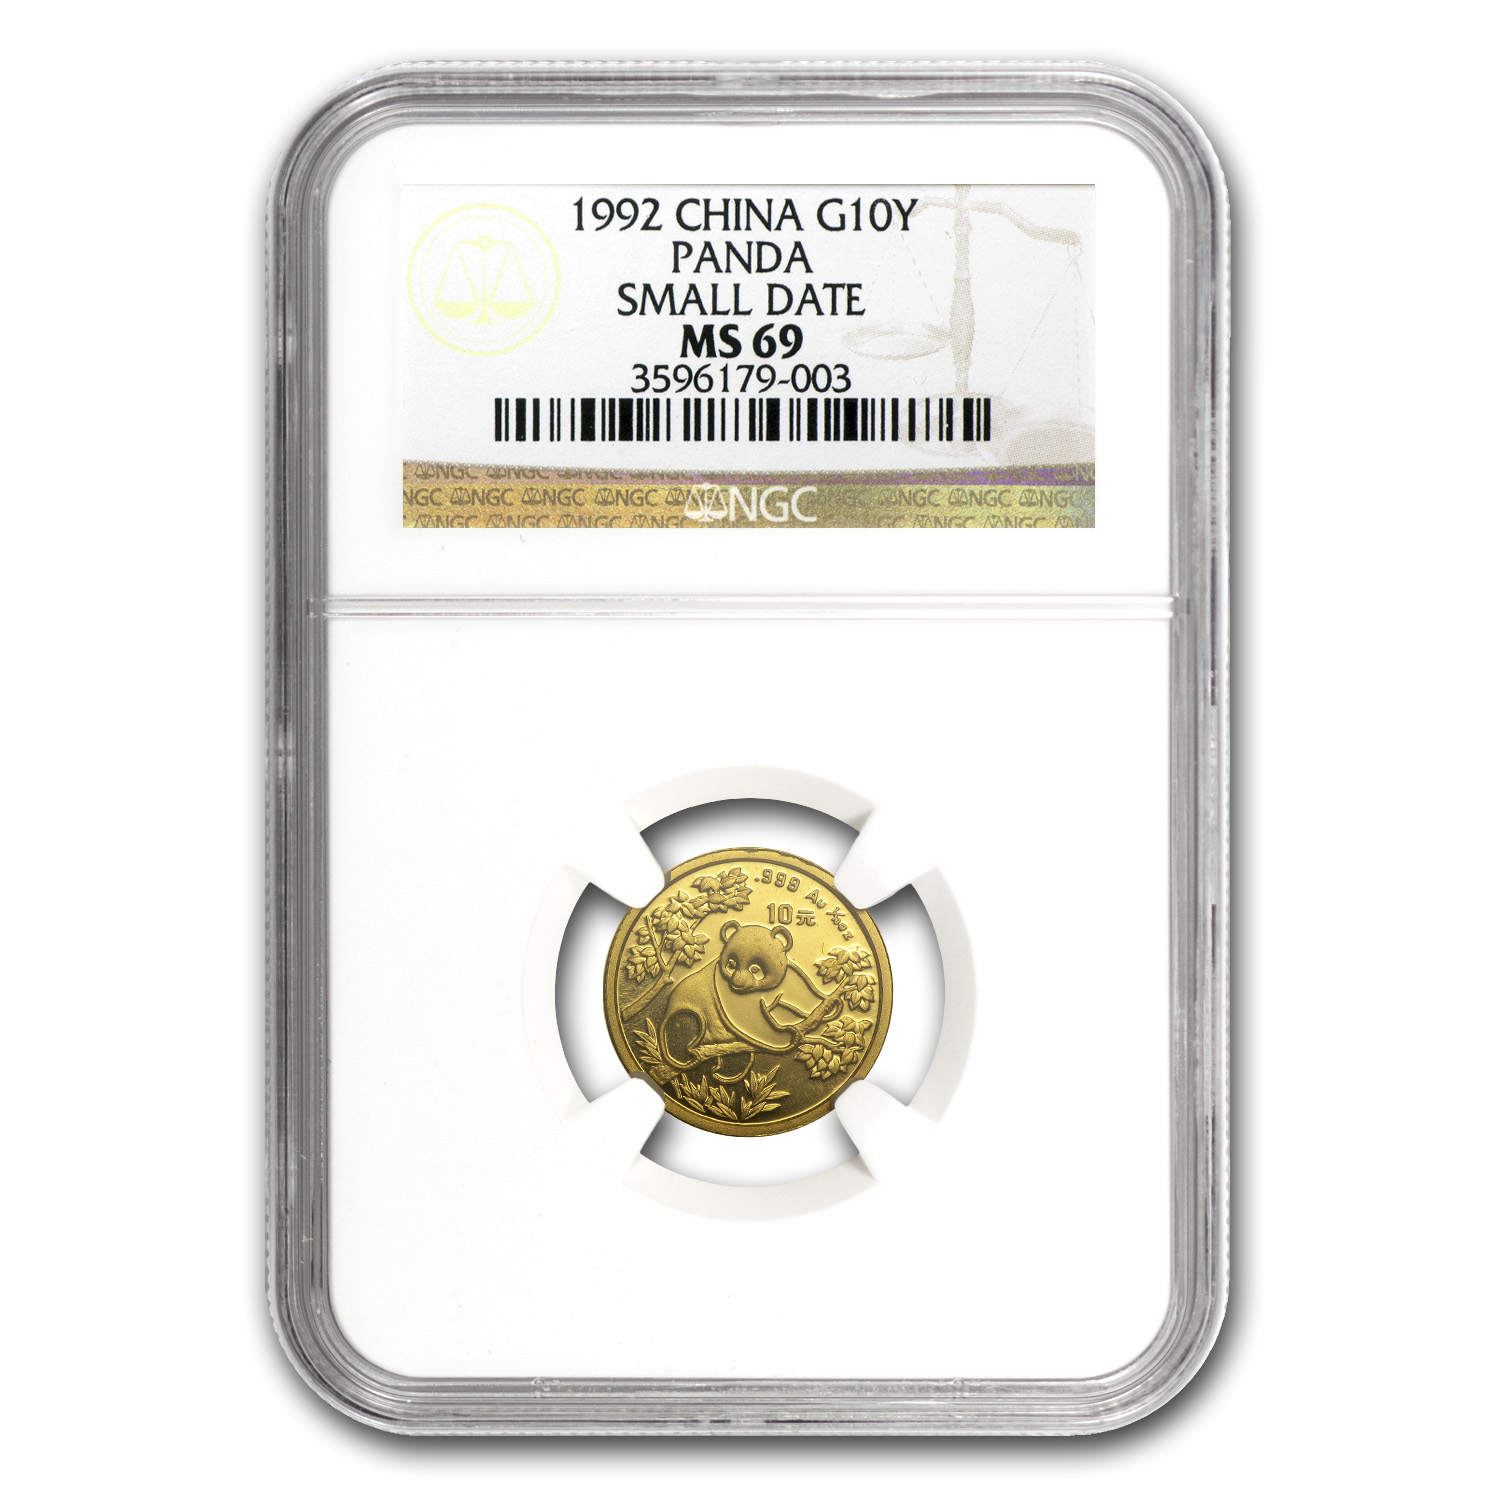 1992 China 1/10 oz Gold Panda Small Date MS-69 NGC